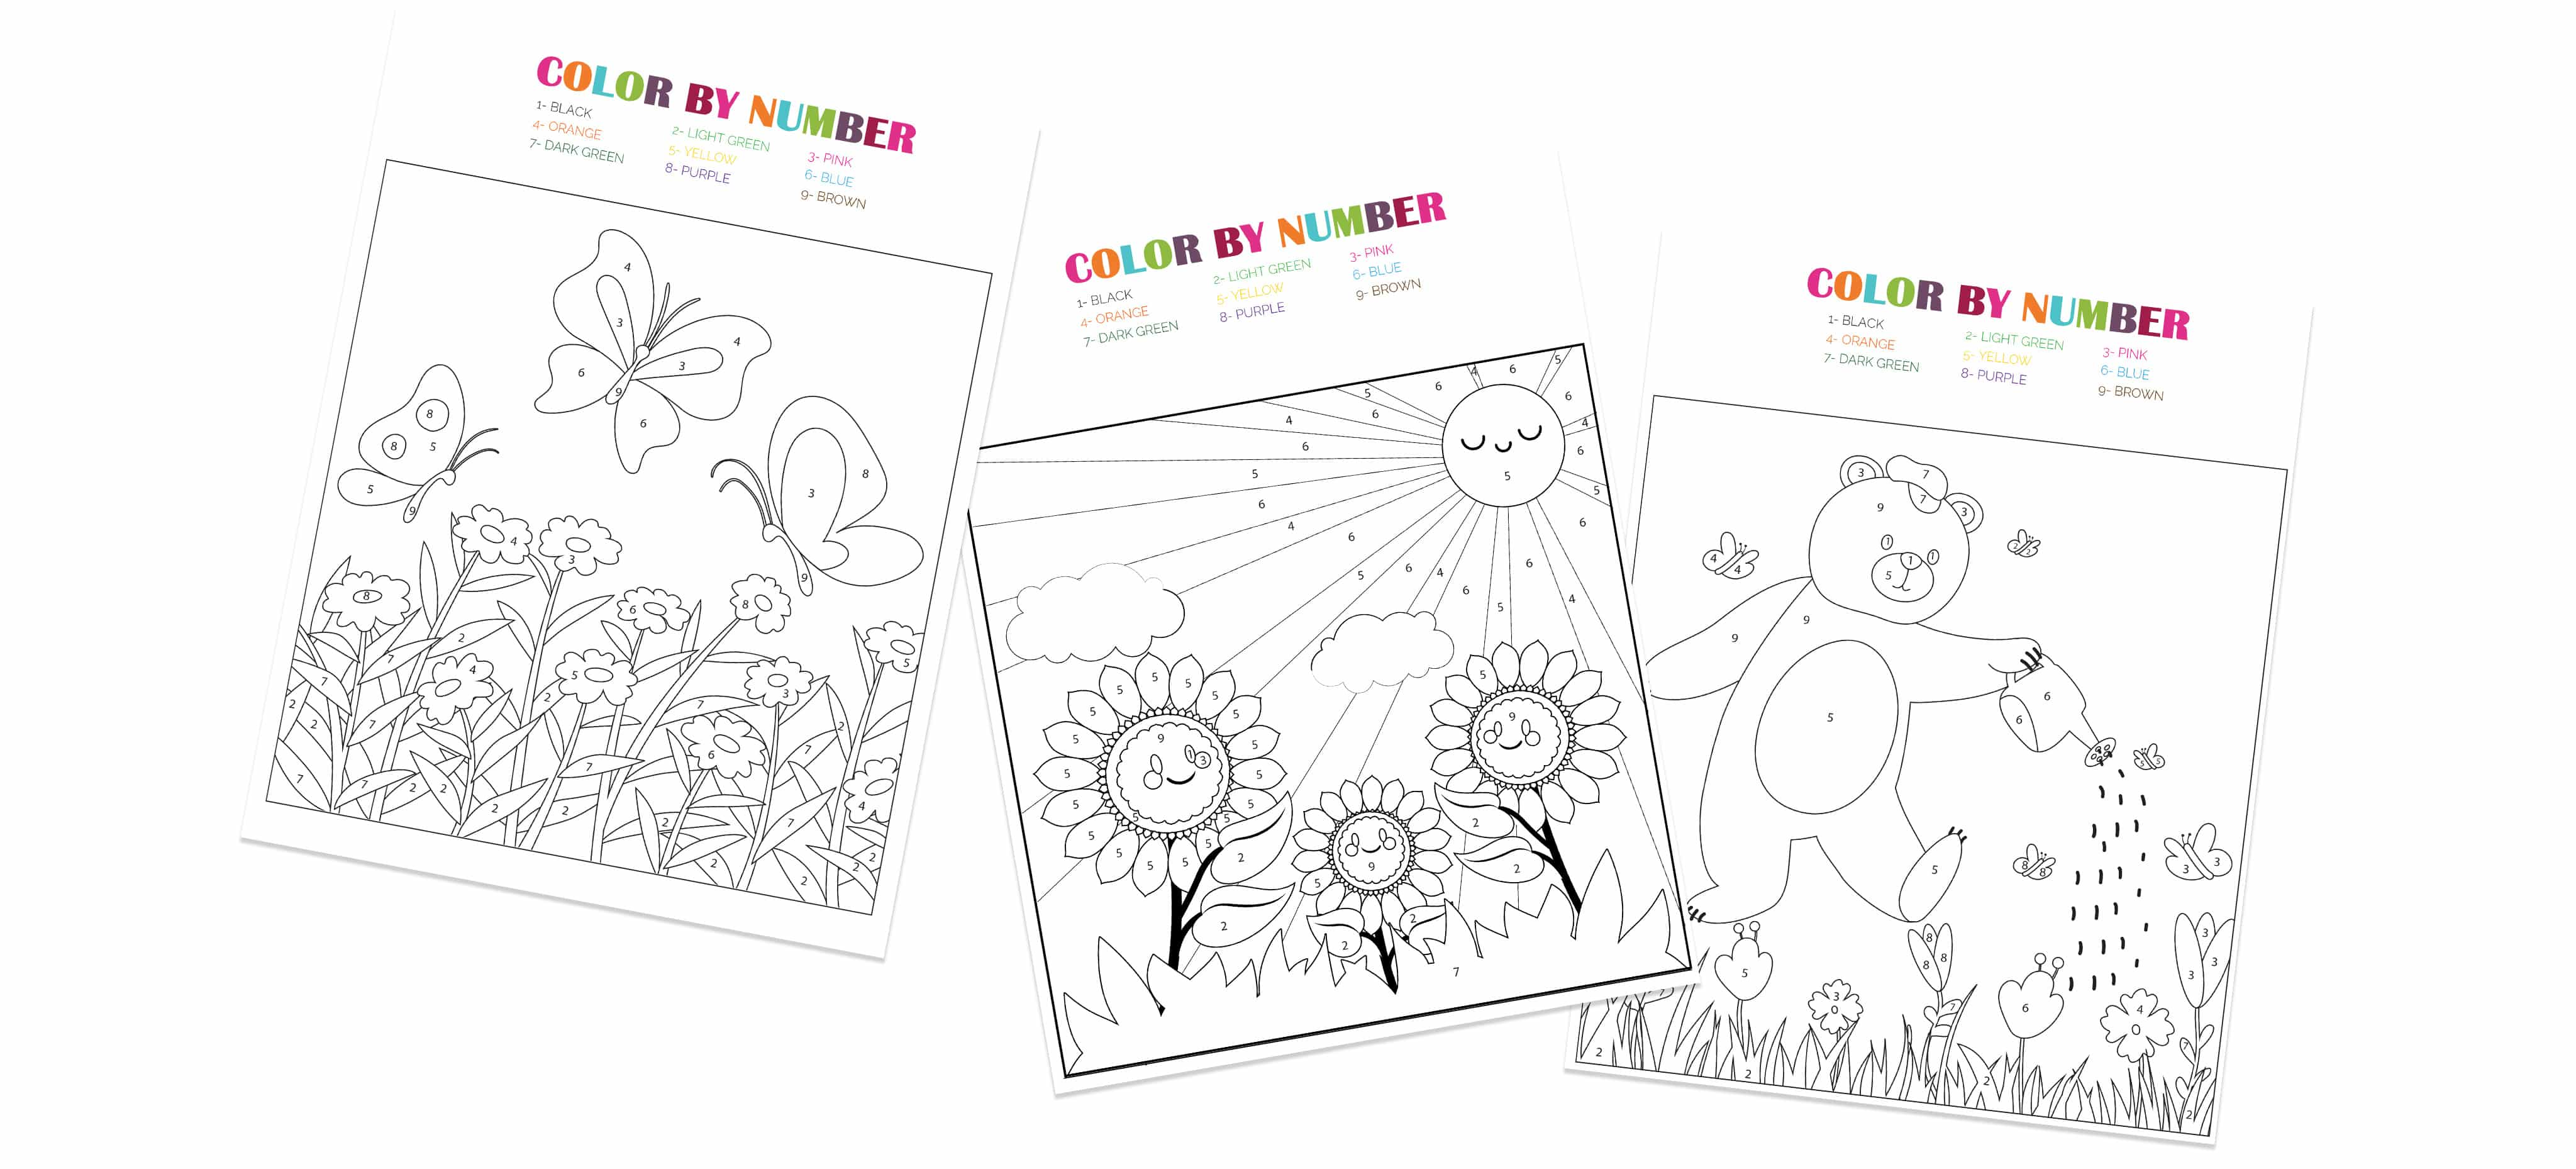 These free spring color by number printables are another great way to keep your kids learning their numbers and refining their fine motor skills while having fun!